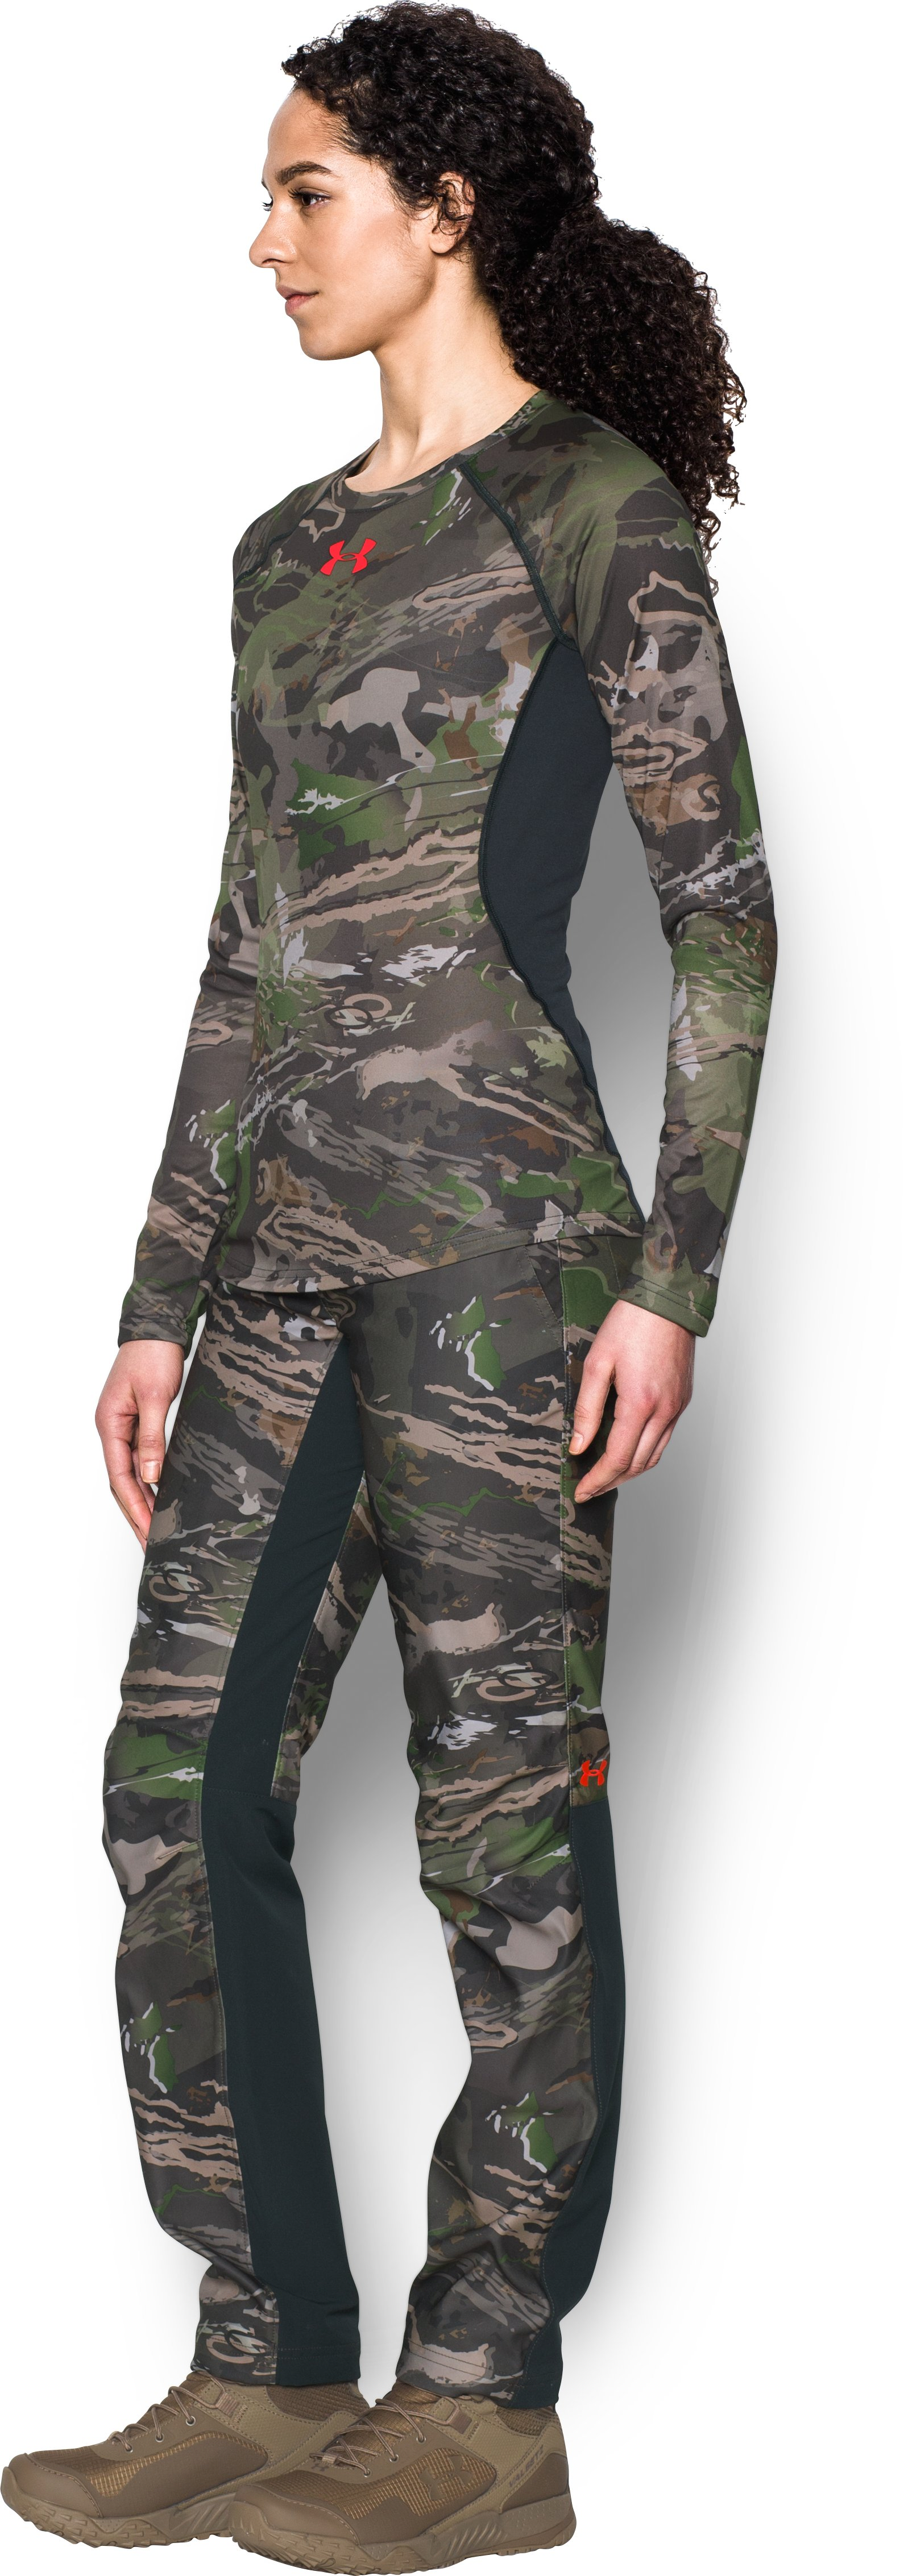 Women's Under Armour® Scent Control Tech Long Sleeve, RIDGE REAPER® FOREST, undefined